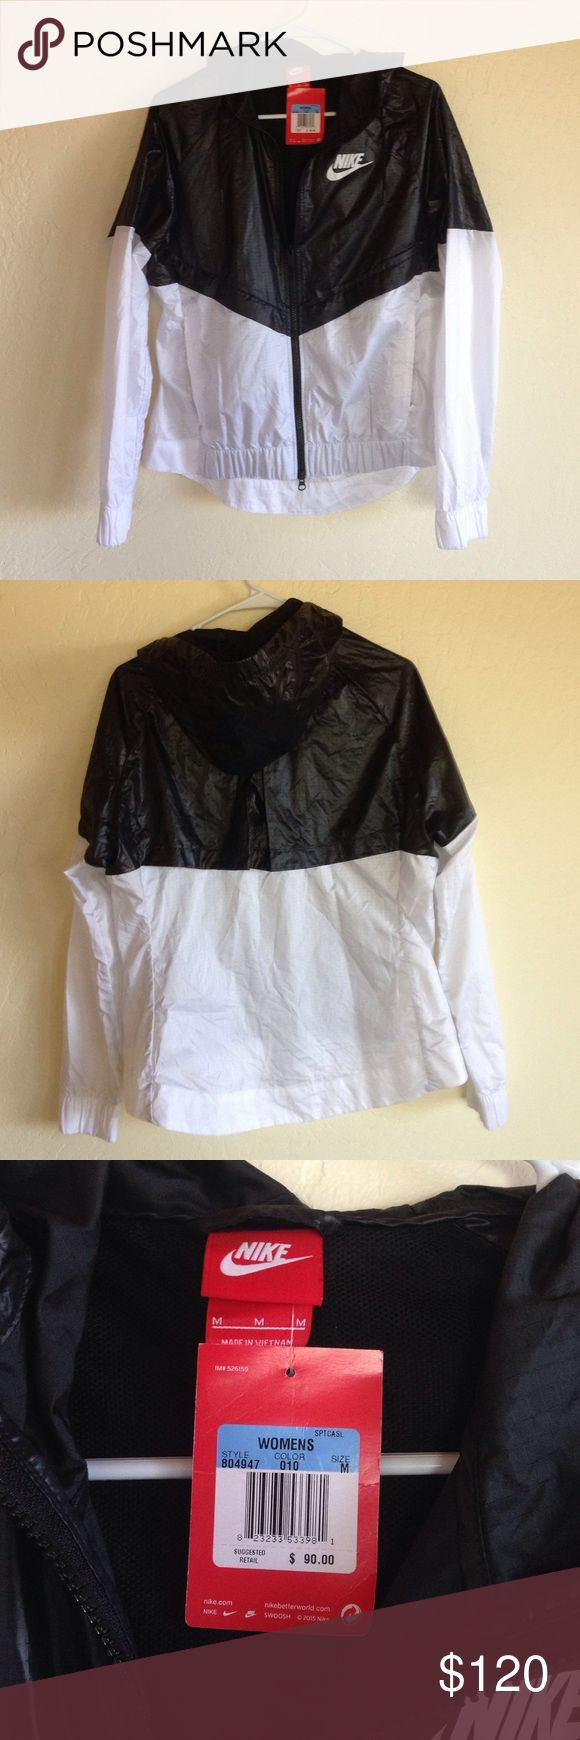 Nike black and white windbreaker NWT New with tags never worn. Seen a few people with an ISO for this! This item is authentic and not a copy like a few that I've seen on here! Nike Tops